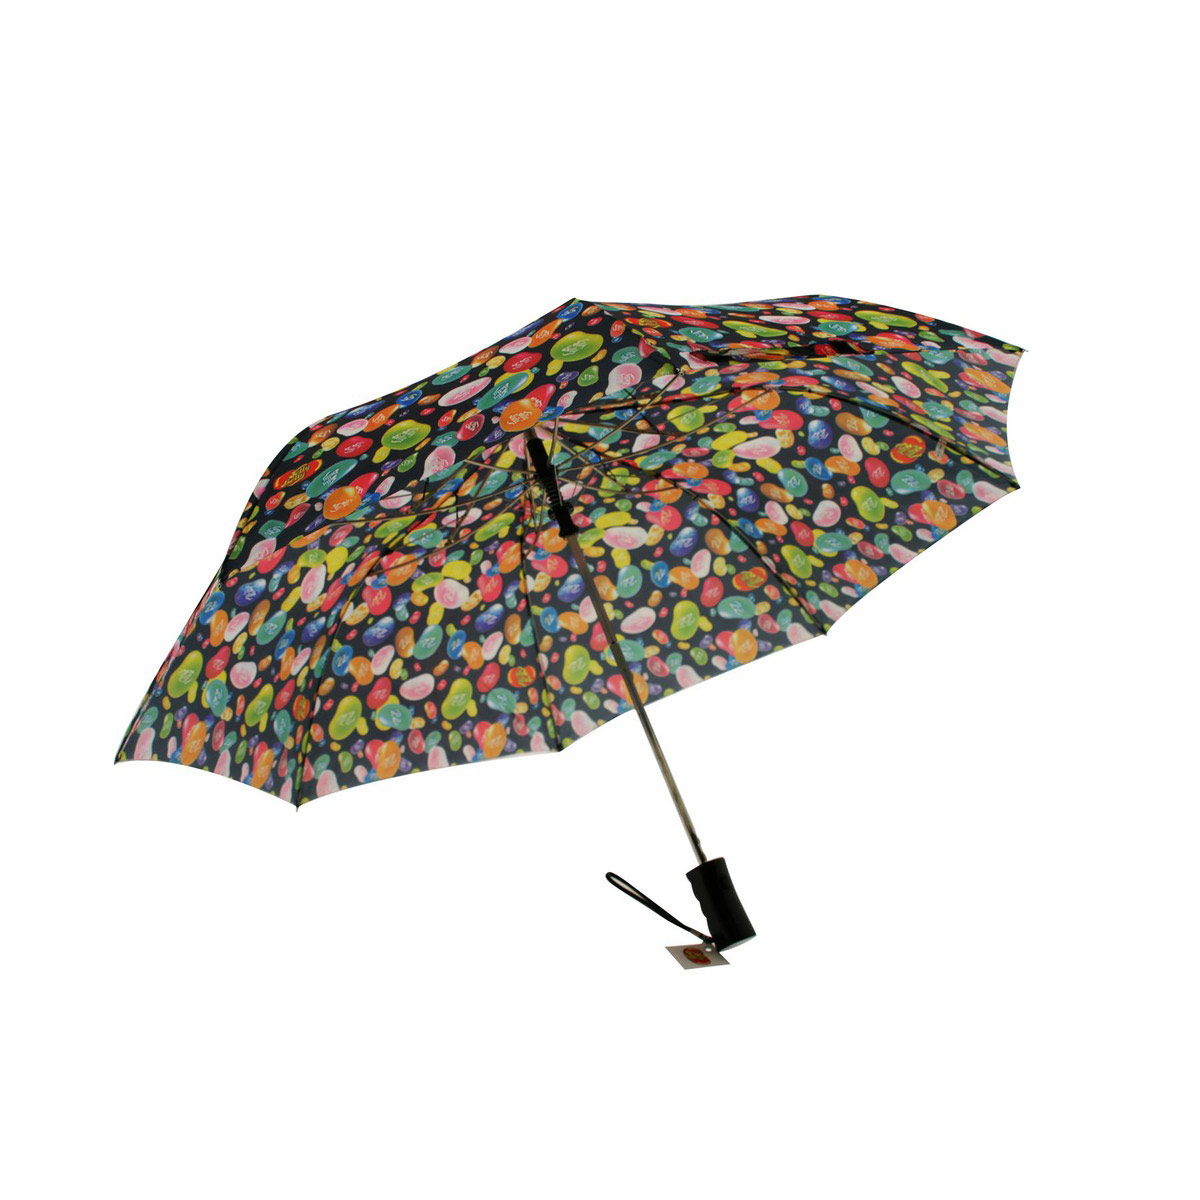 Jelly Belly Compact Umbrella